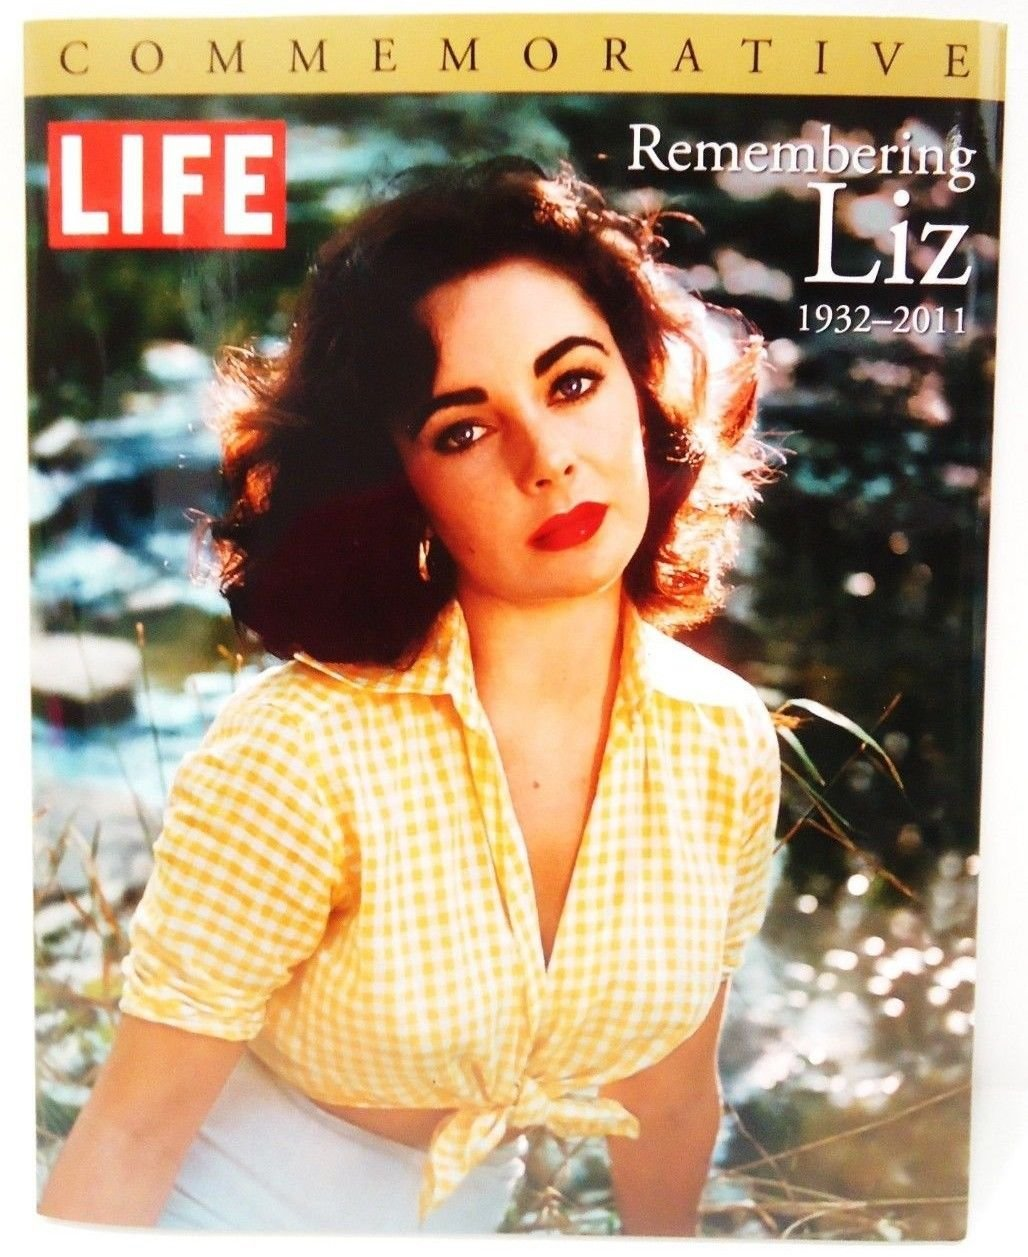 REMEMBERING LIZ - TIME - LIFE - BOOKS - ELIZABETH TAYLOR - NEW - BOOKS - MOVIES